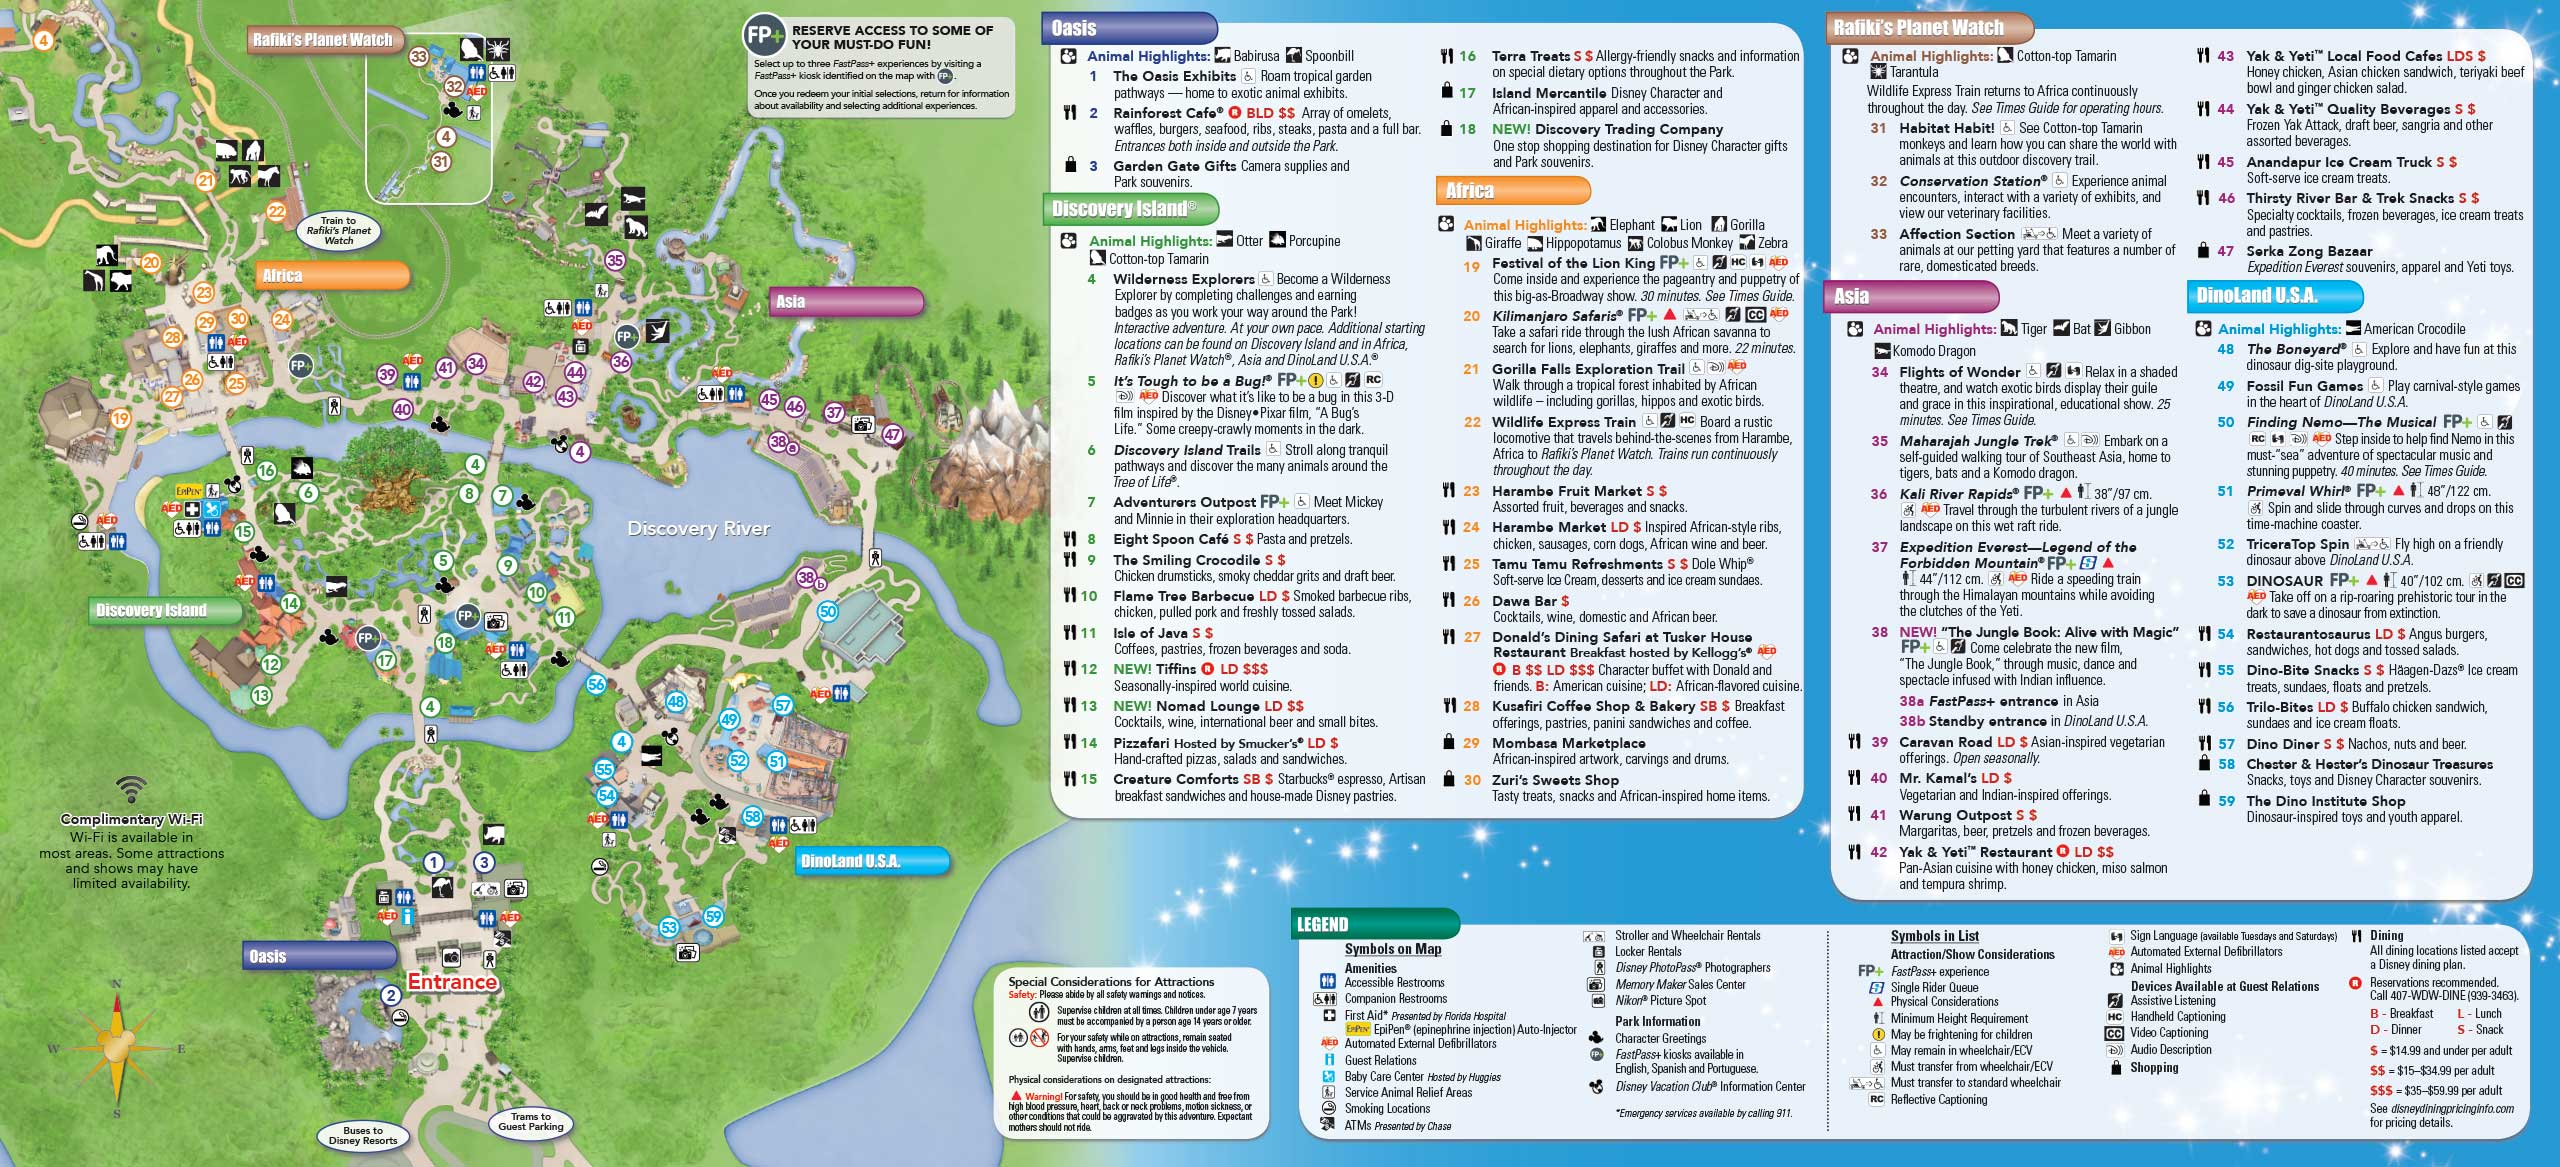 Attractive May 2016 Walt Disney World Park Maps